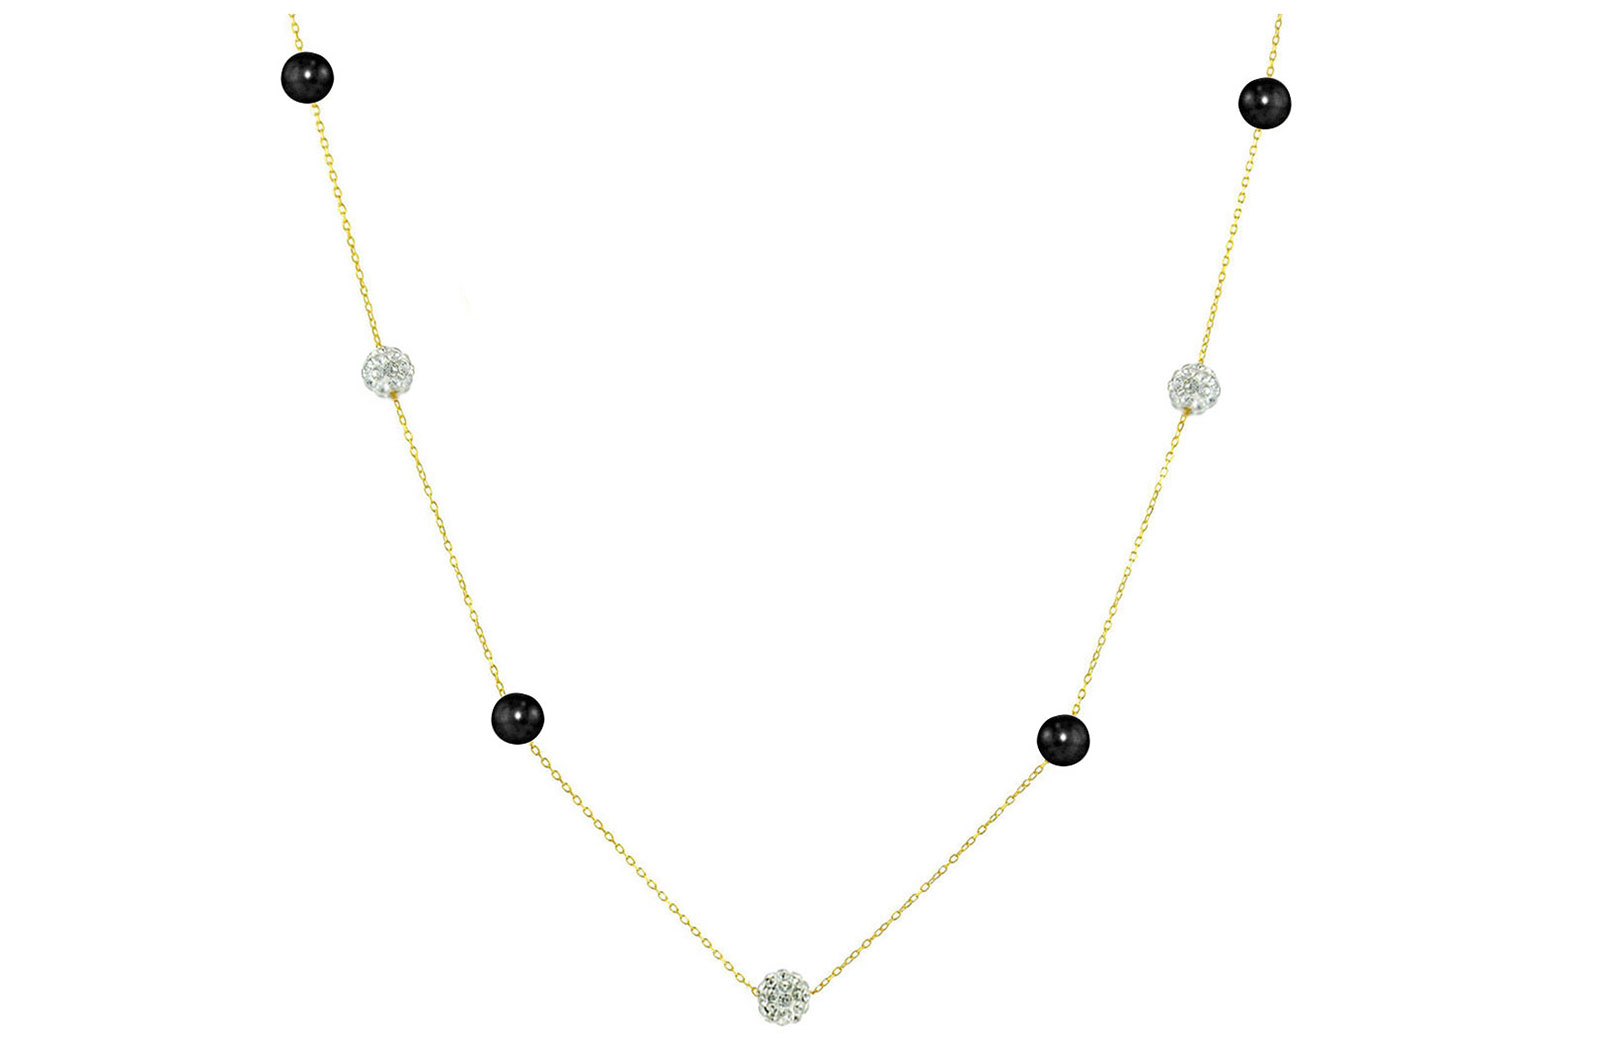 Vera Perla 18K Solid Gold Gradual Built-in 5-6mm Crystal Ball and Black Pearls Necklace